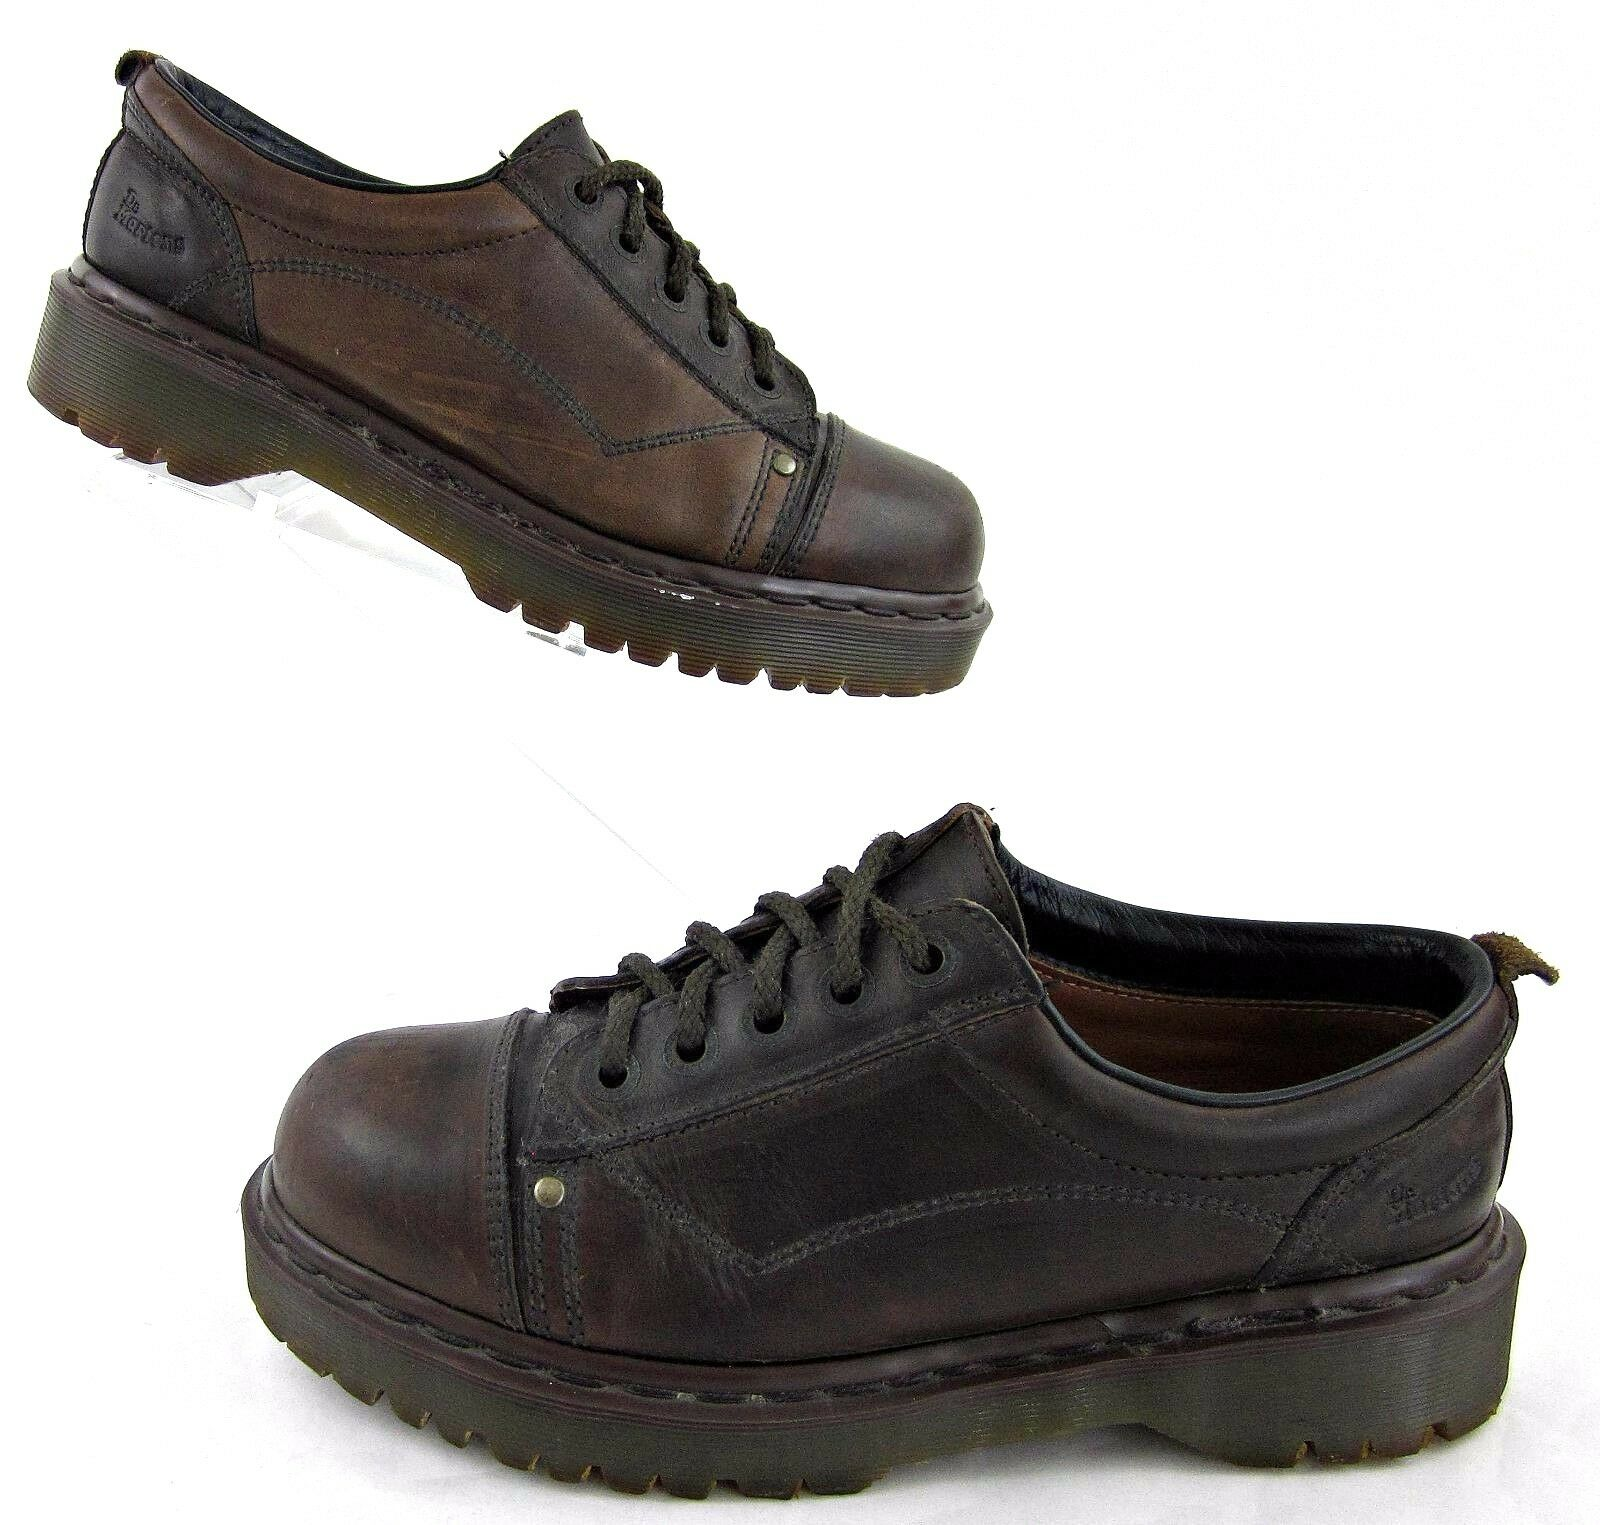 Dr. Martens 8322 Cap Toe Oxford Shoes Brown / US 9 Made In England